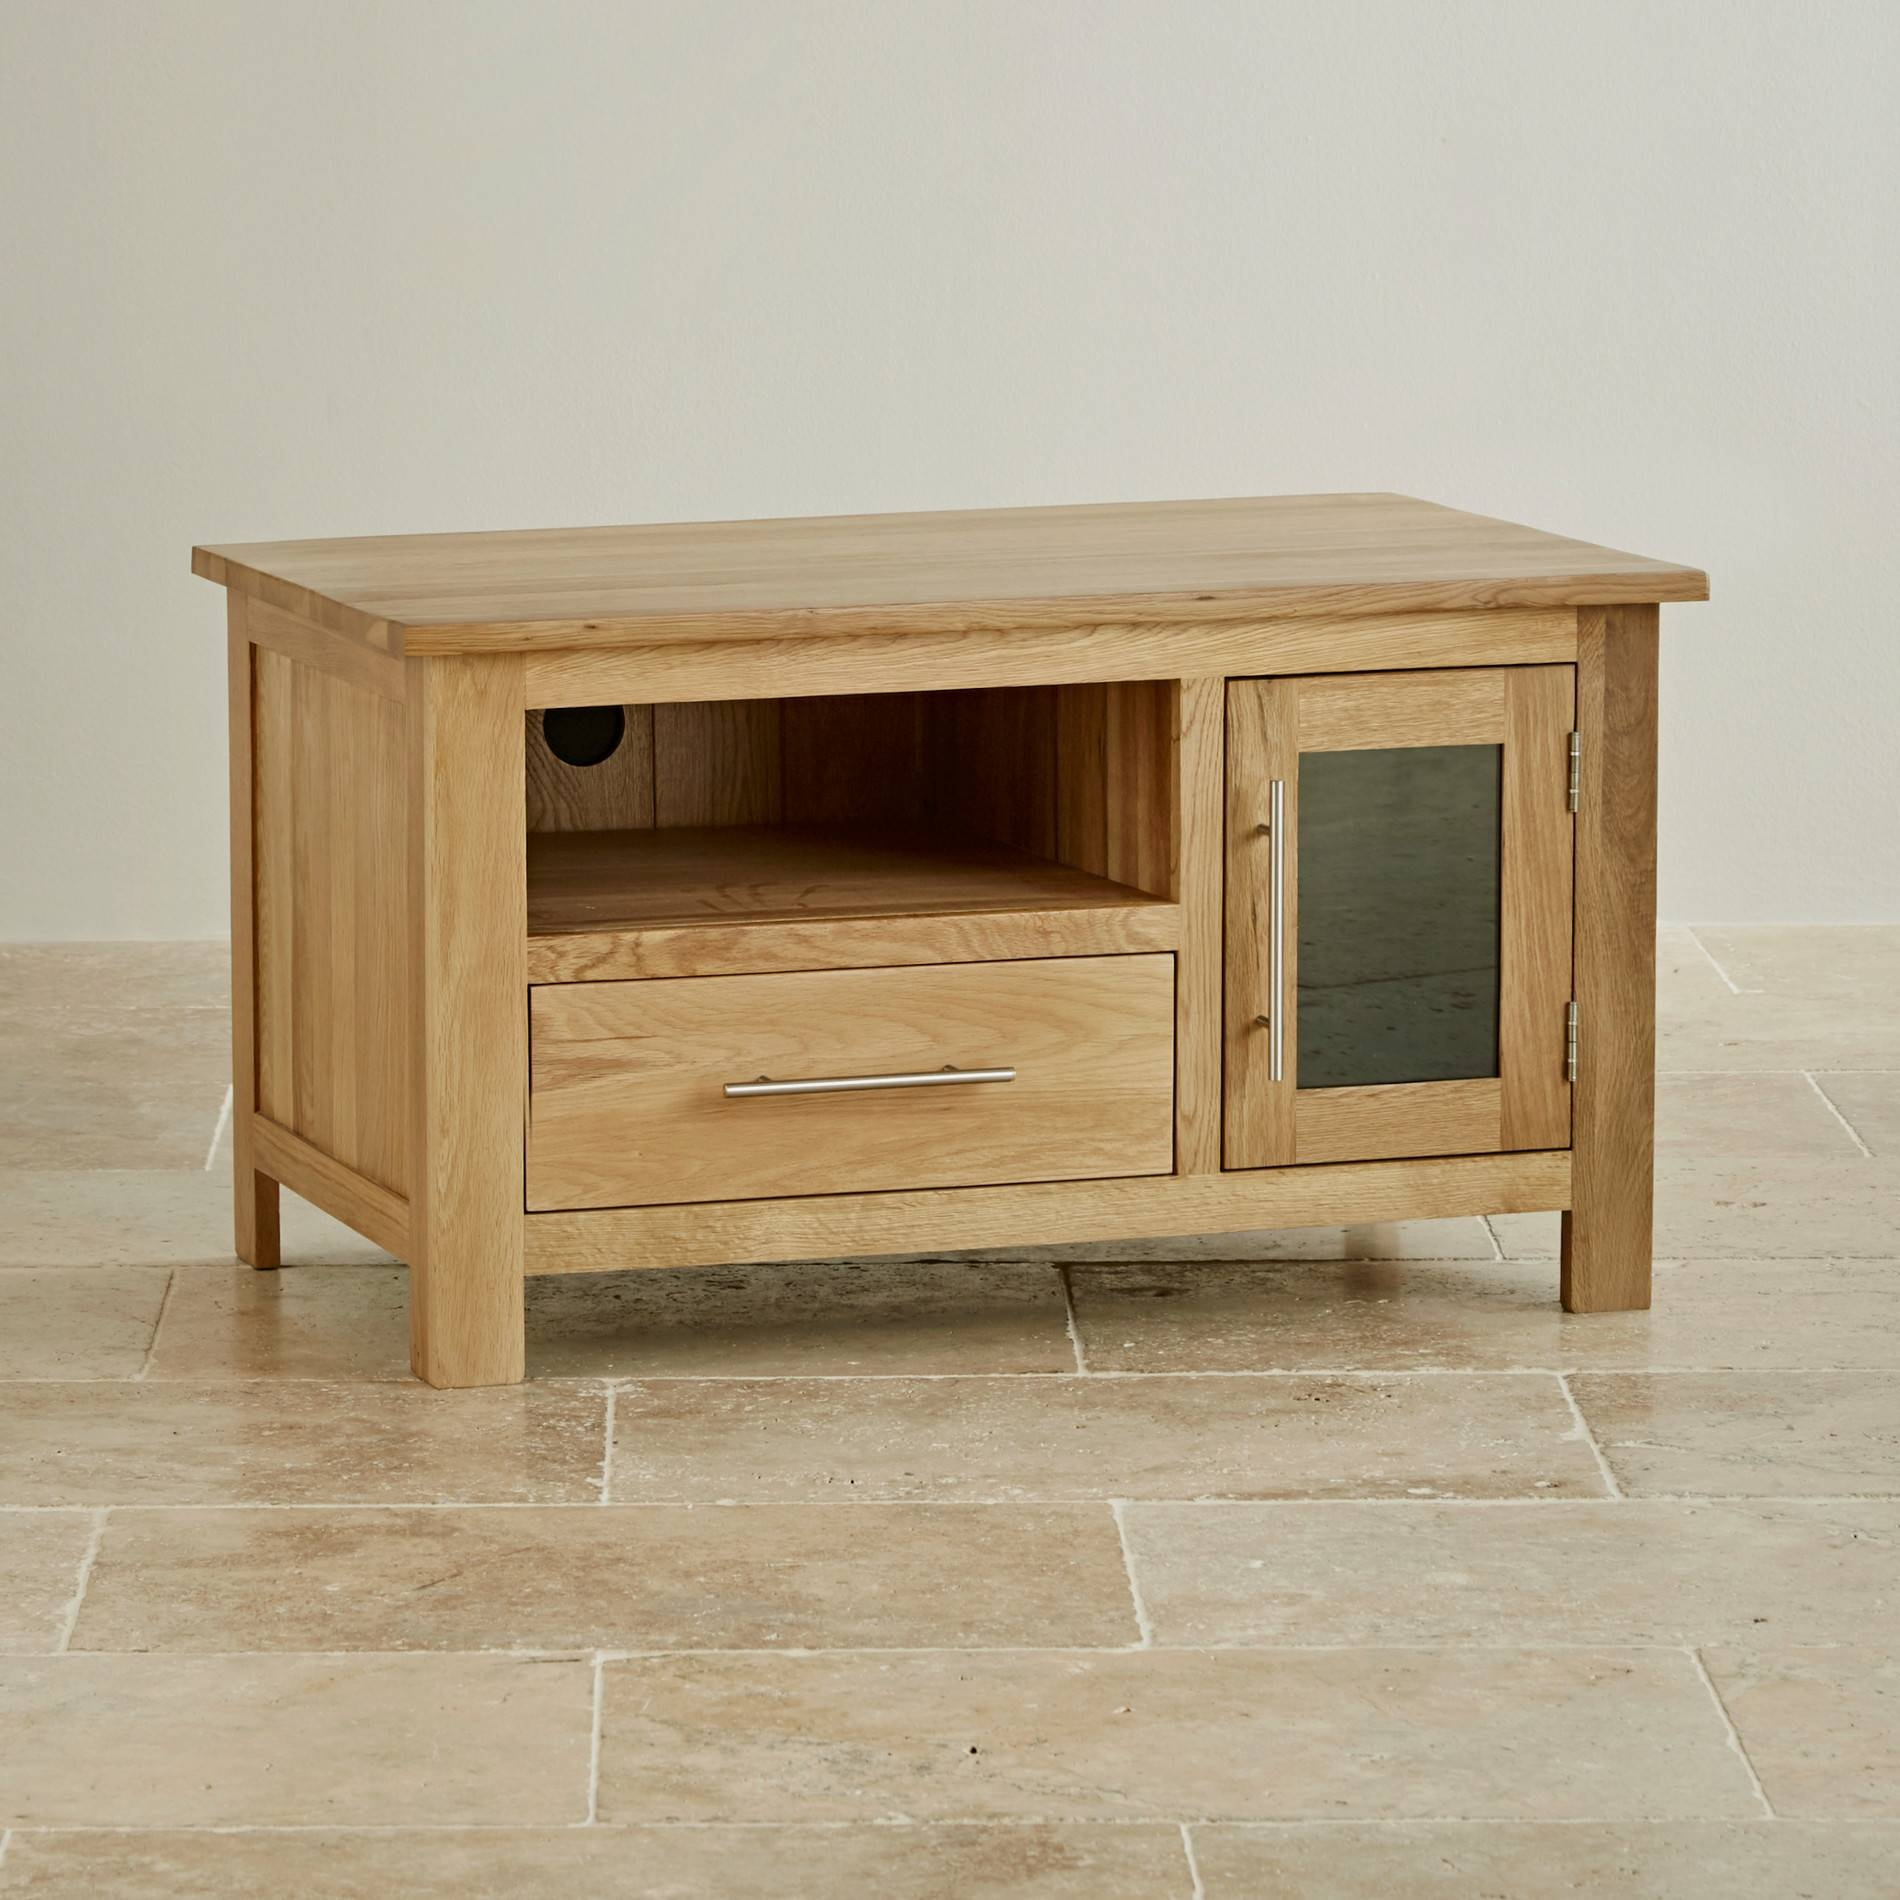 Rivermead Natural Solid Oak Tv + Dvd Cabinet | Lounge Furniture with regard to Oak Tv Cabinets (Image 12 of 15)